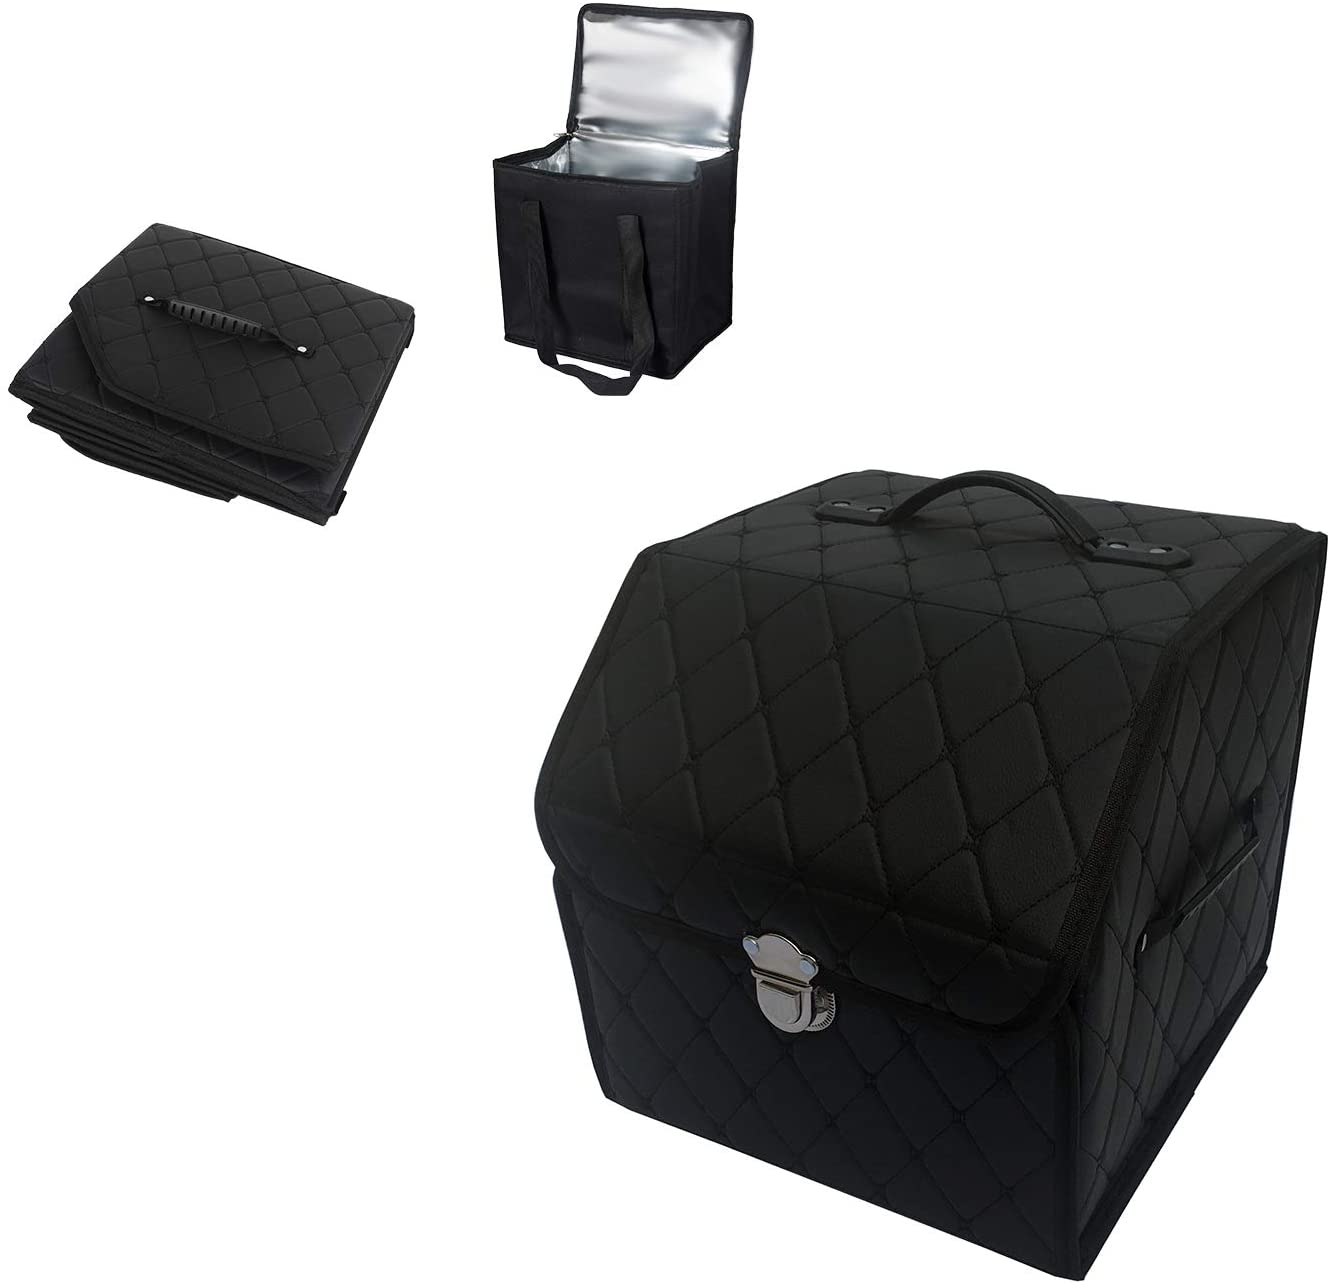 Car PU Leather Trunk Organizer Storage,Collapsible & Waterproof Portable with Premium Insulation Cooler Bag (Black/Black line, S)